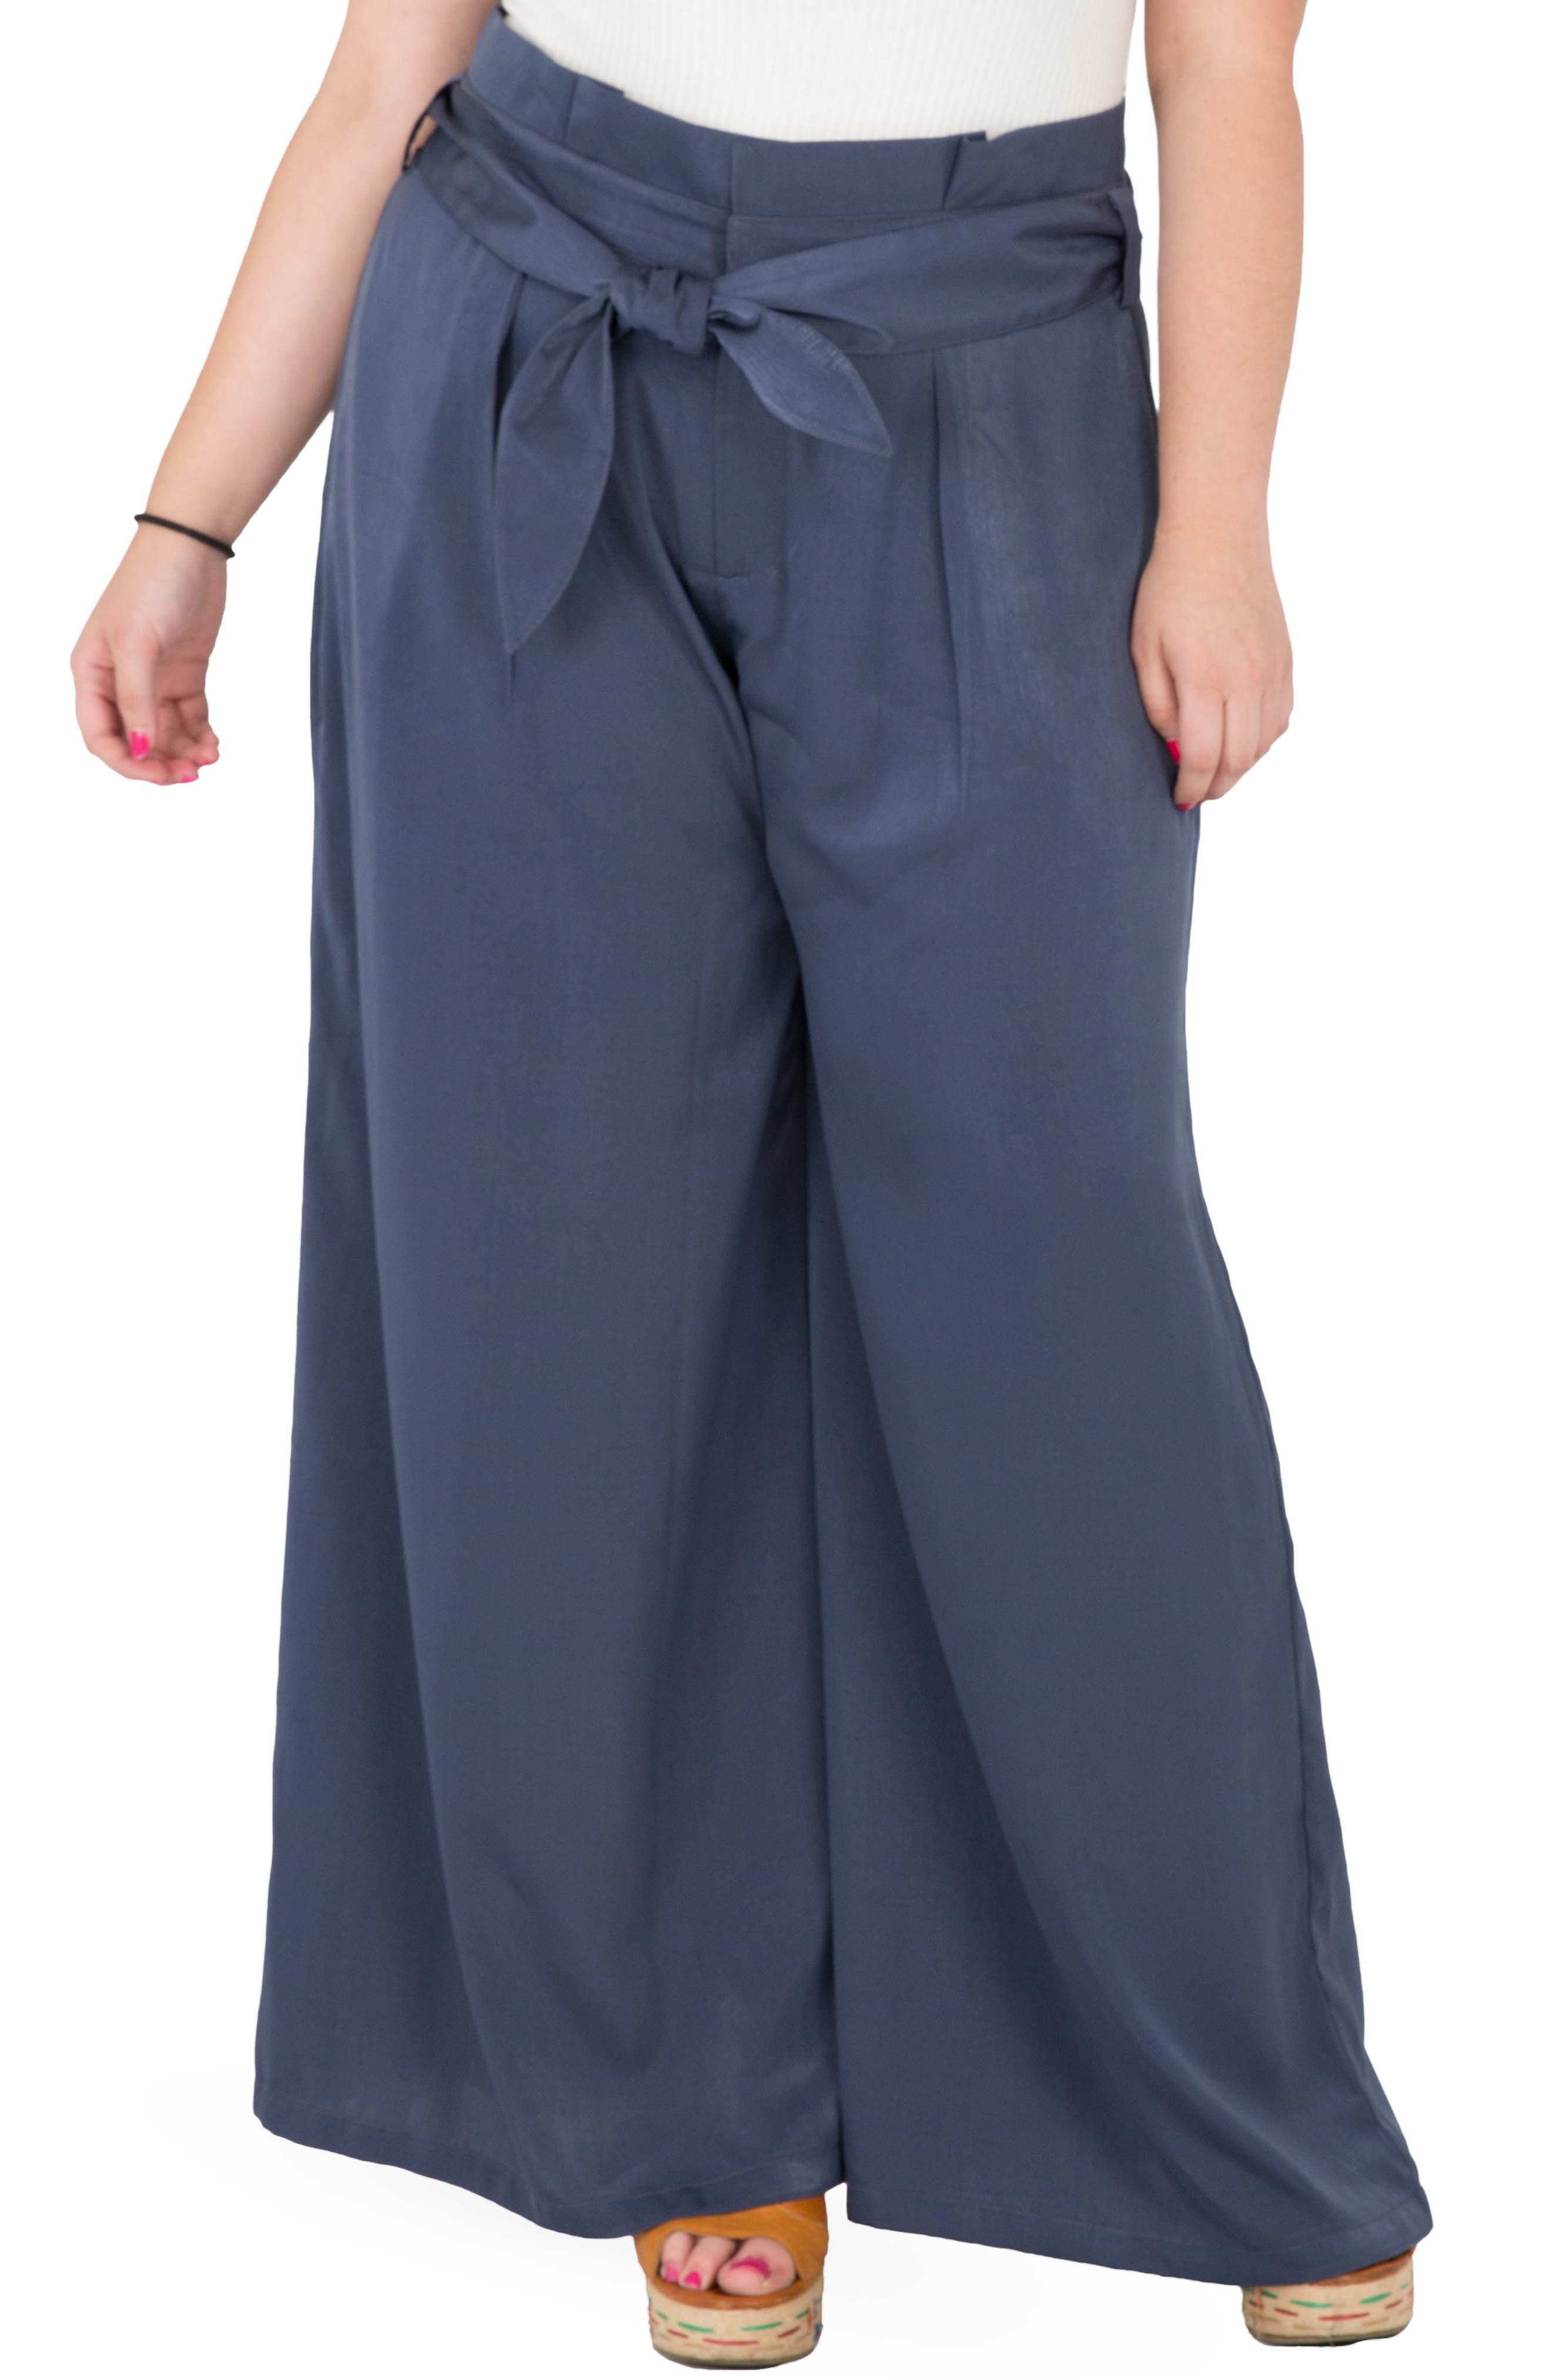 Sue Wide Leg Pants,                             Main thumbnail 1, color,                             NAVY